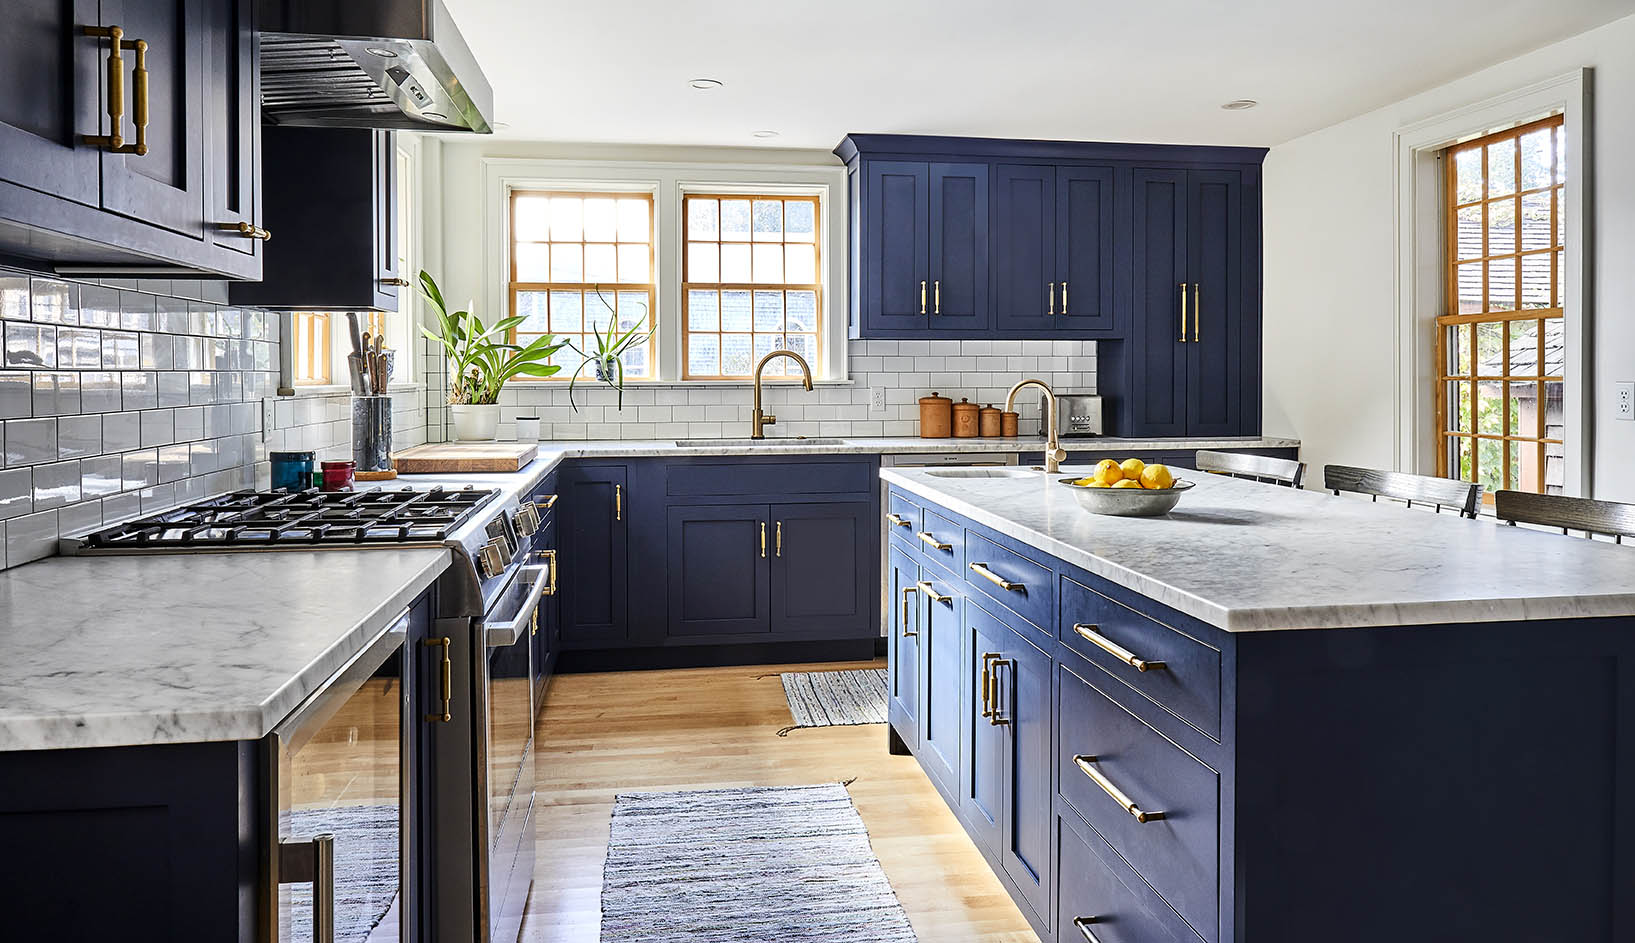 O&G Owner and Creative Director Jonathan Glatt's kitchen featuring Atlantic Hardware in Tumbled.  The kitchen has windows on three sides and is built within a 1790.  Just steps from Narragansett Bay, the house was built in 1760.  Natural finish wood windows and deep beaded window trim  all relate to the homes original character.